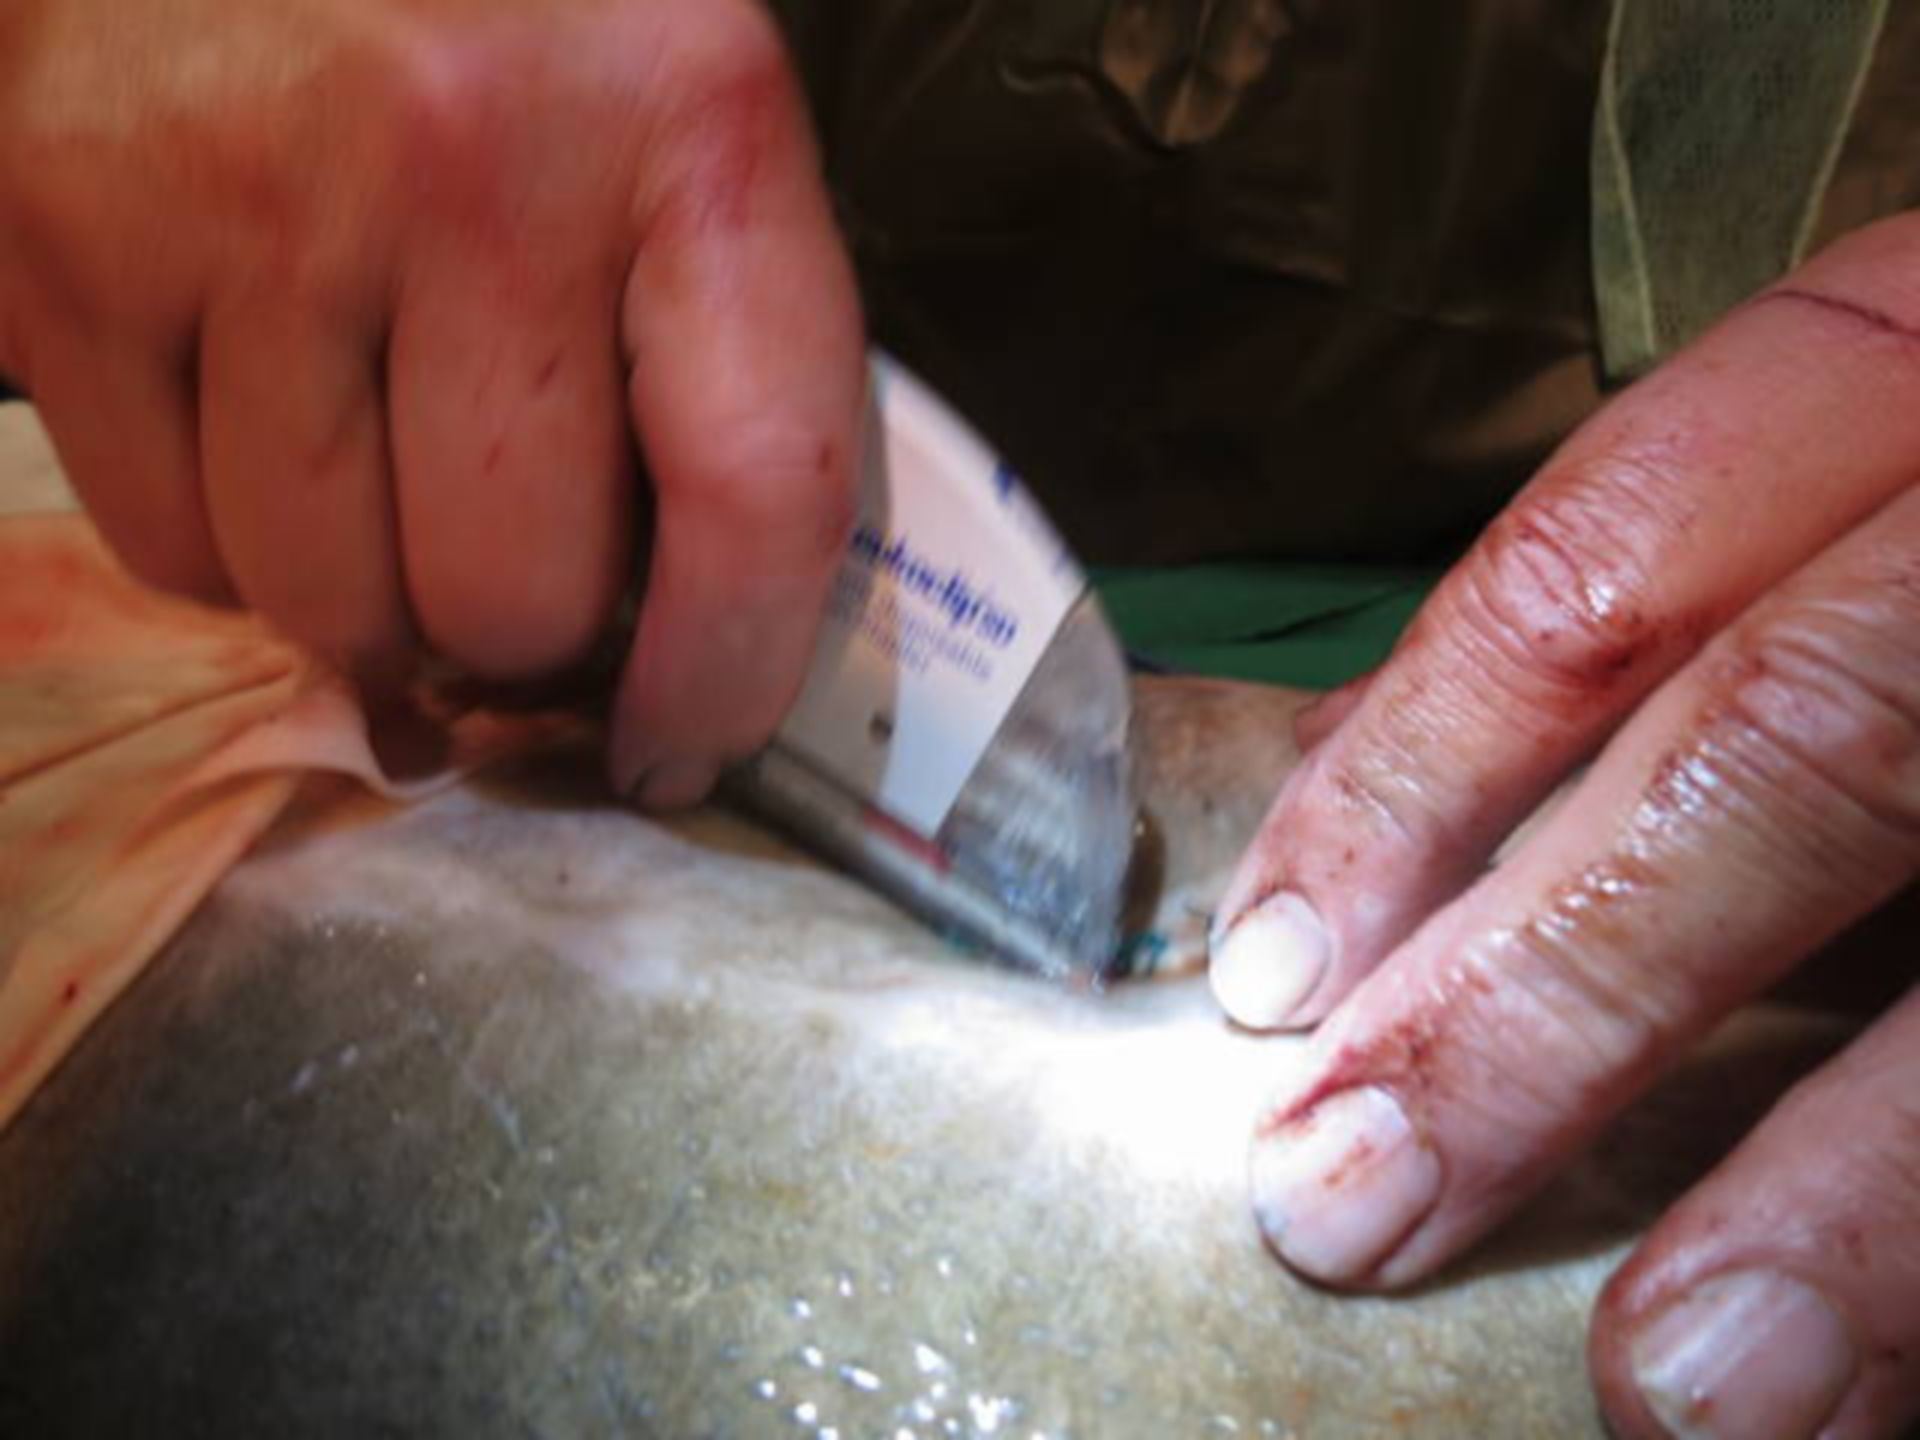 Forgein body removal surgery in a sturgeon (14)